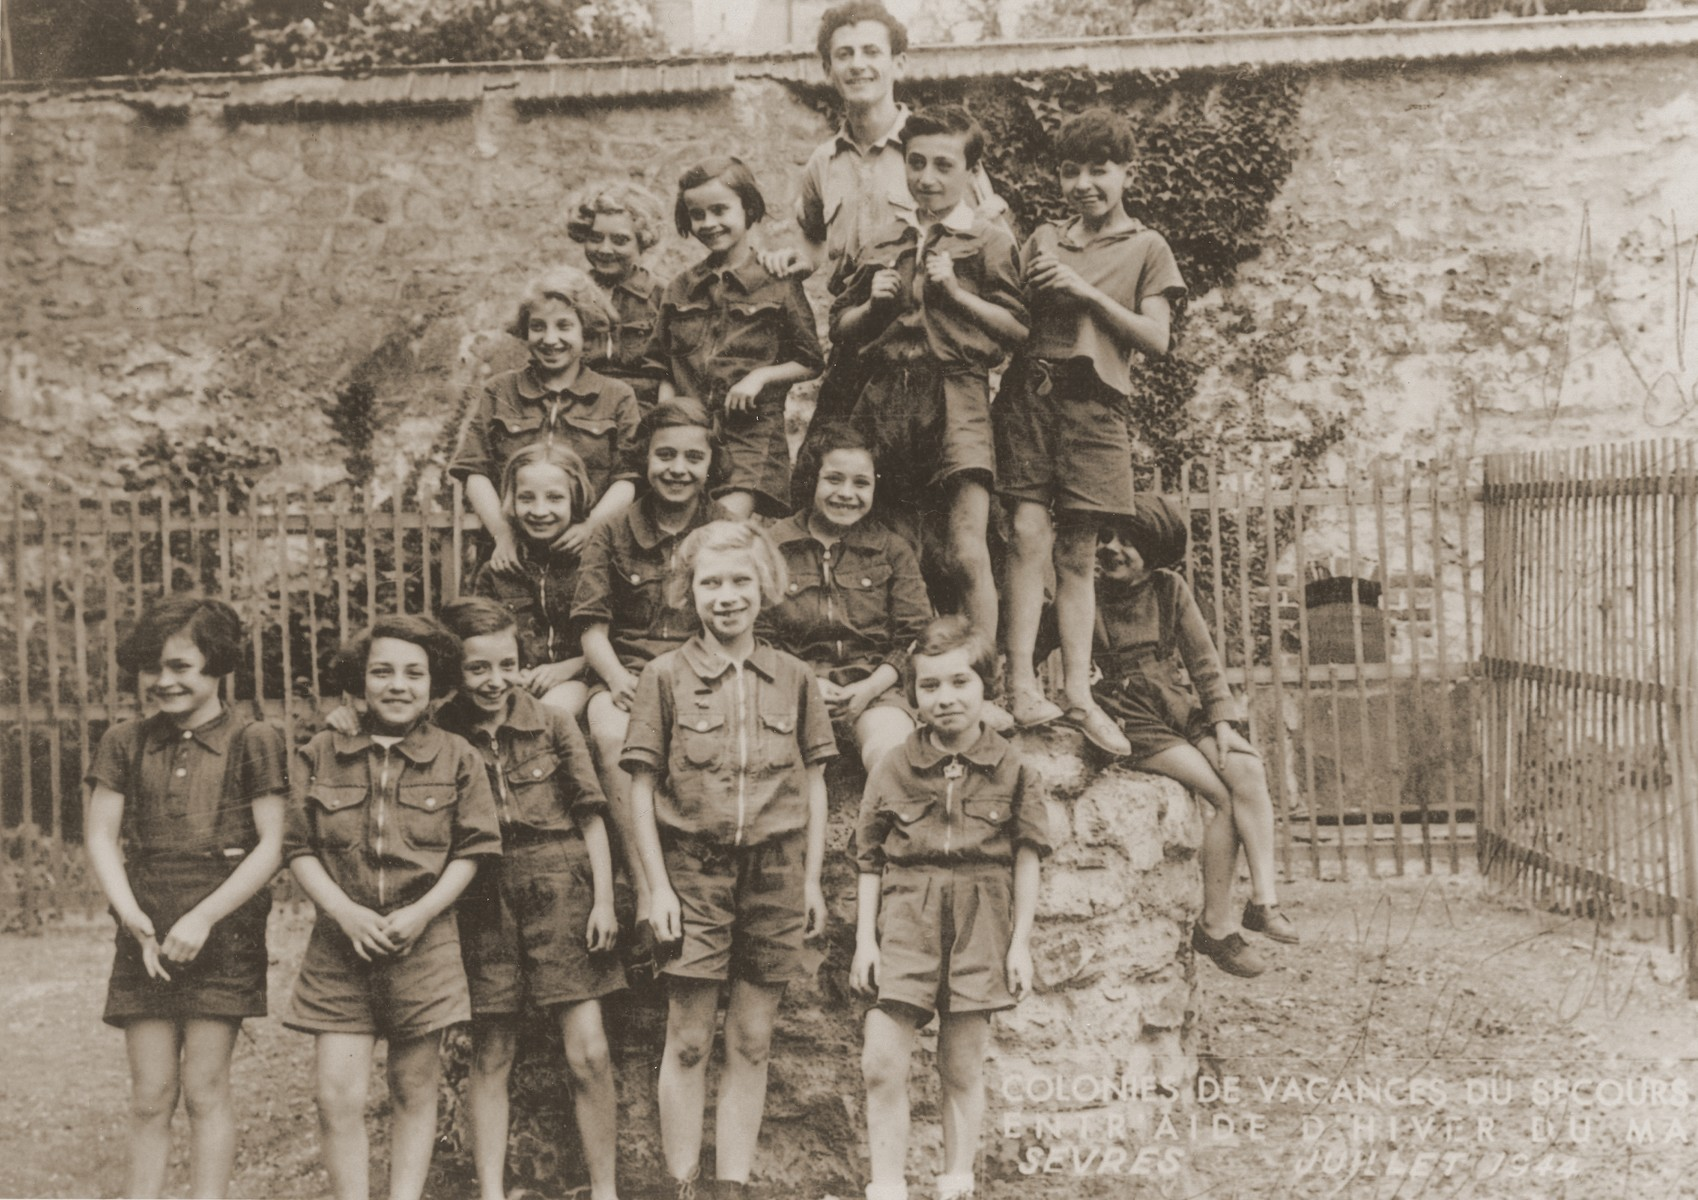 Group portrait of Jewish children in the yard of the Les Bruyeres children's home in Sevres.  OSE successfully hid some thirty Jewish children in this Vichy children's home.    Marcel Mengel (now Marcel Marceau) is standing at the top.